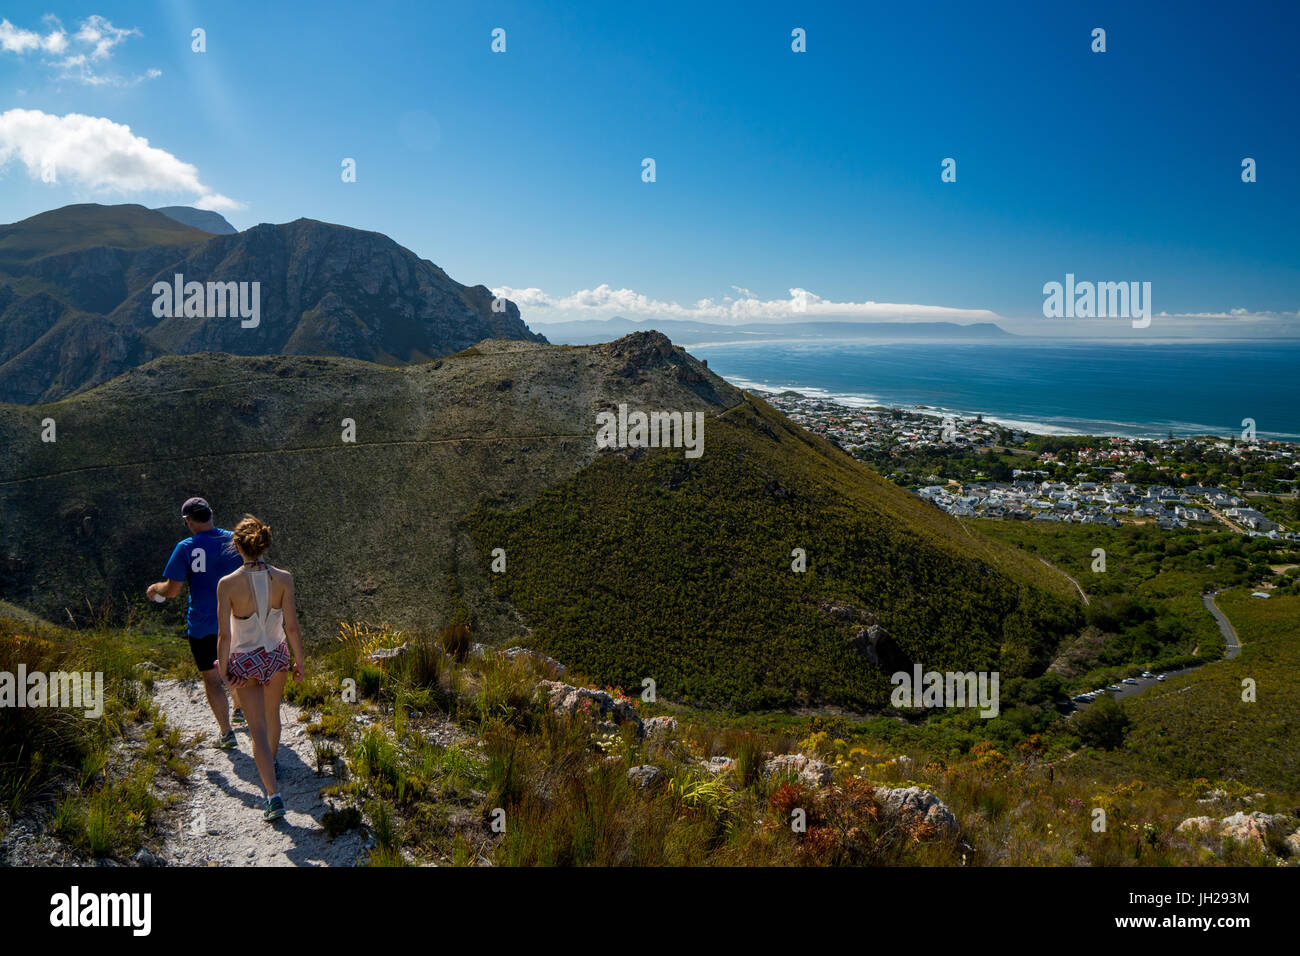 Man and woman hikers walking down into Hermanus from the mountain, Hermanus, South Africa, Africa - Stock Image